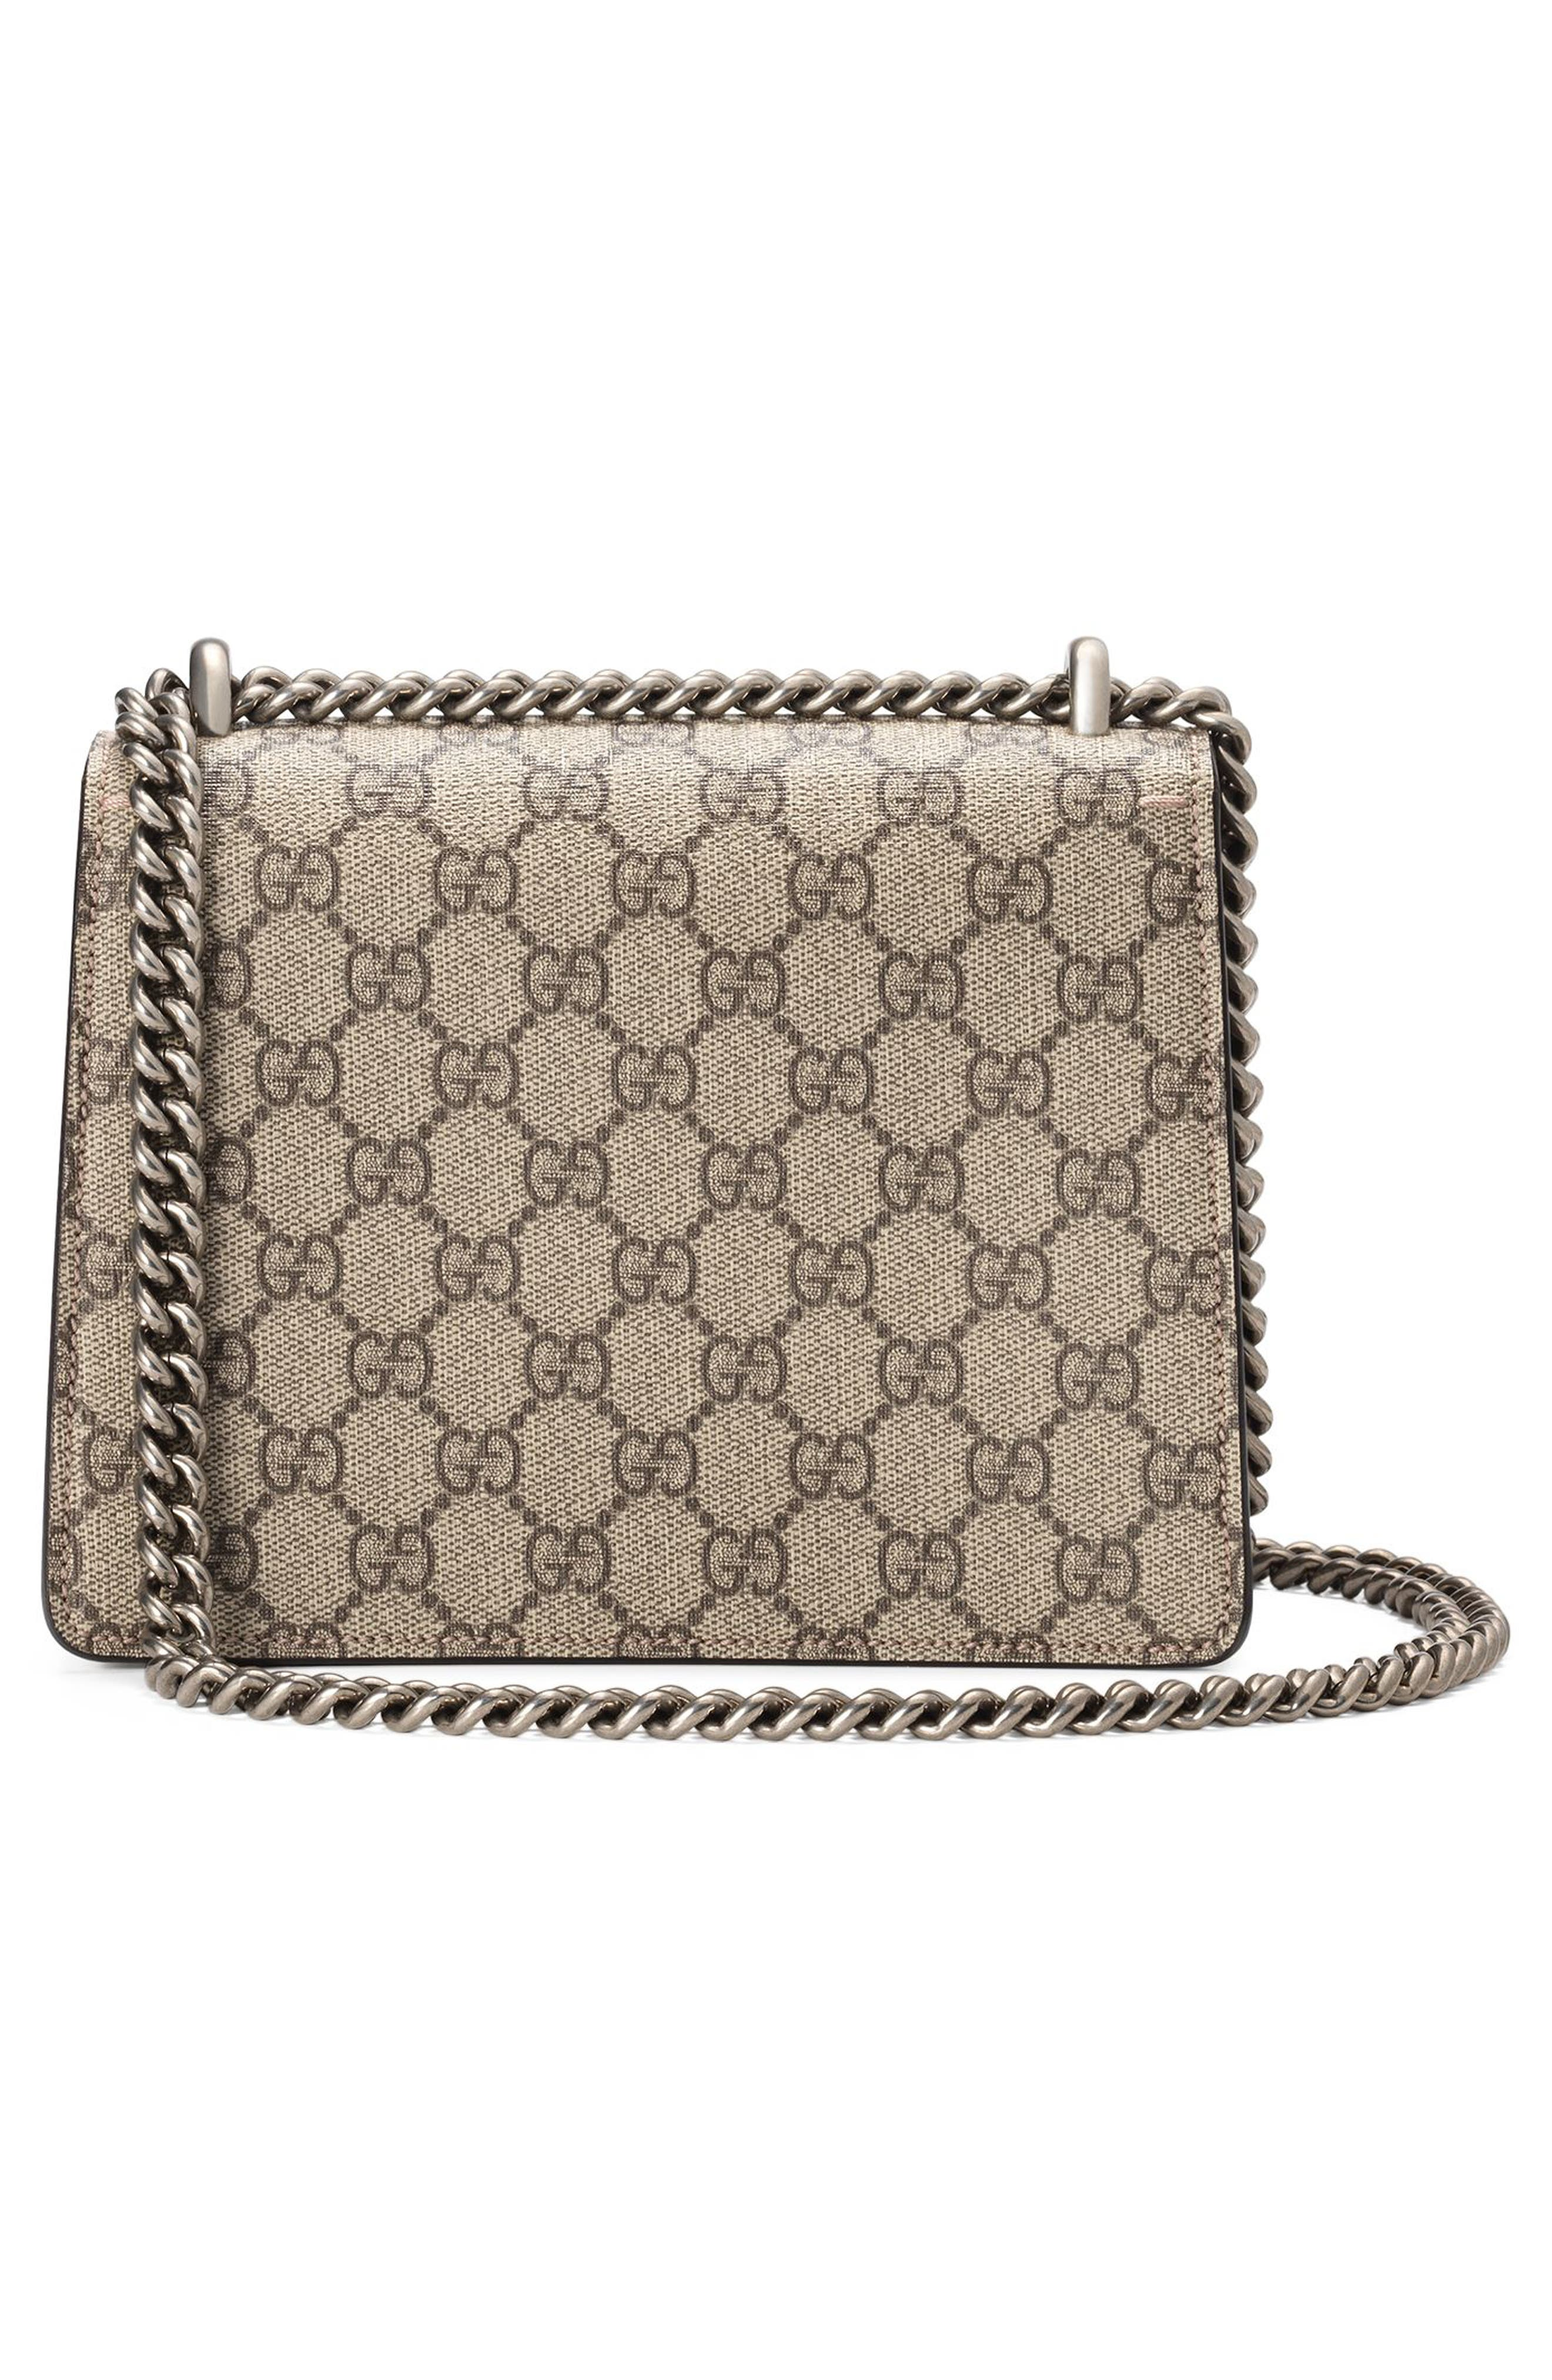 GUCCI,                             Mini Dionysus GG Supreme Shoulder Bag,                             Alternate thumbnail 3, color,                             BEIGE EBONY/ TAUPE